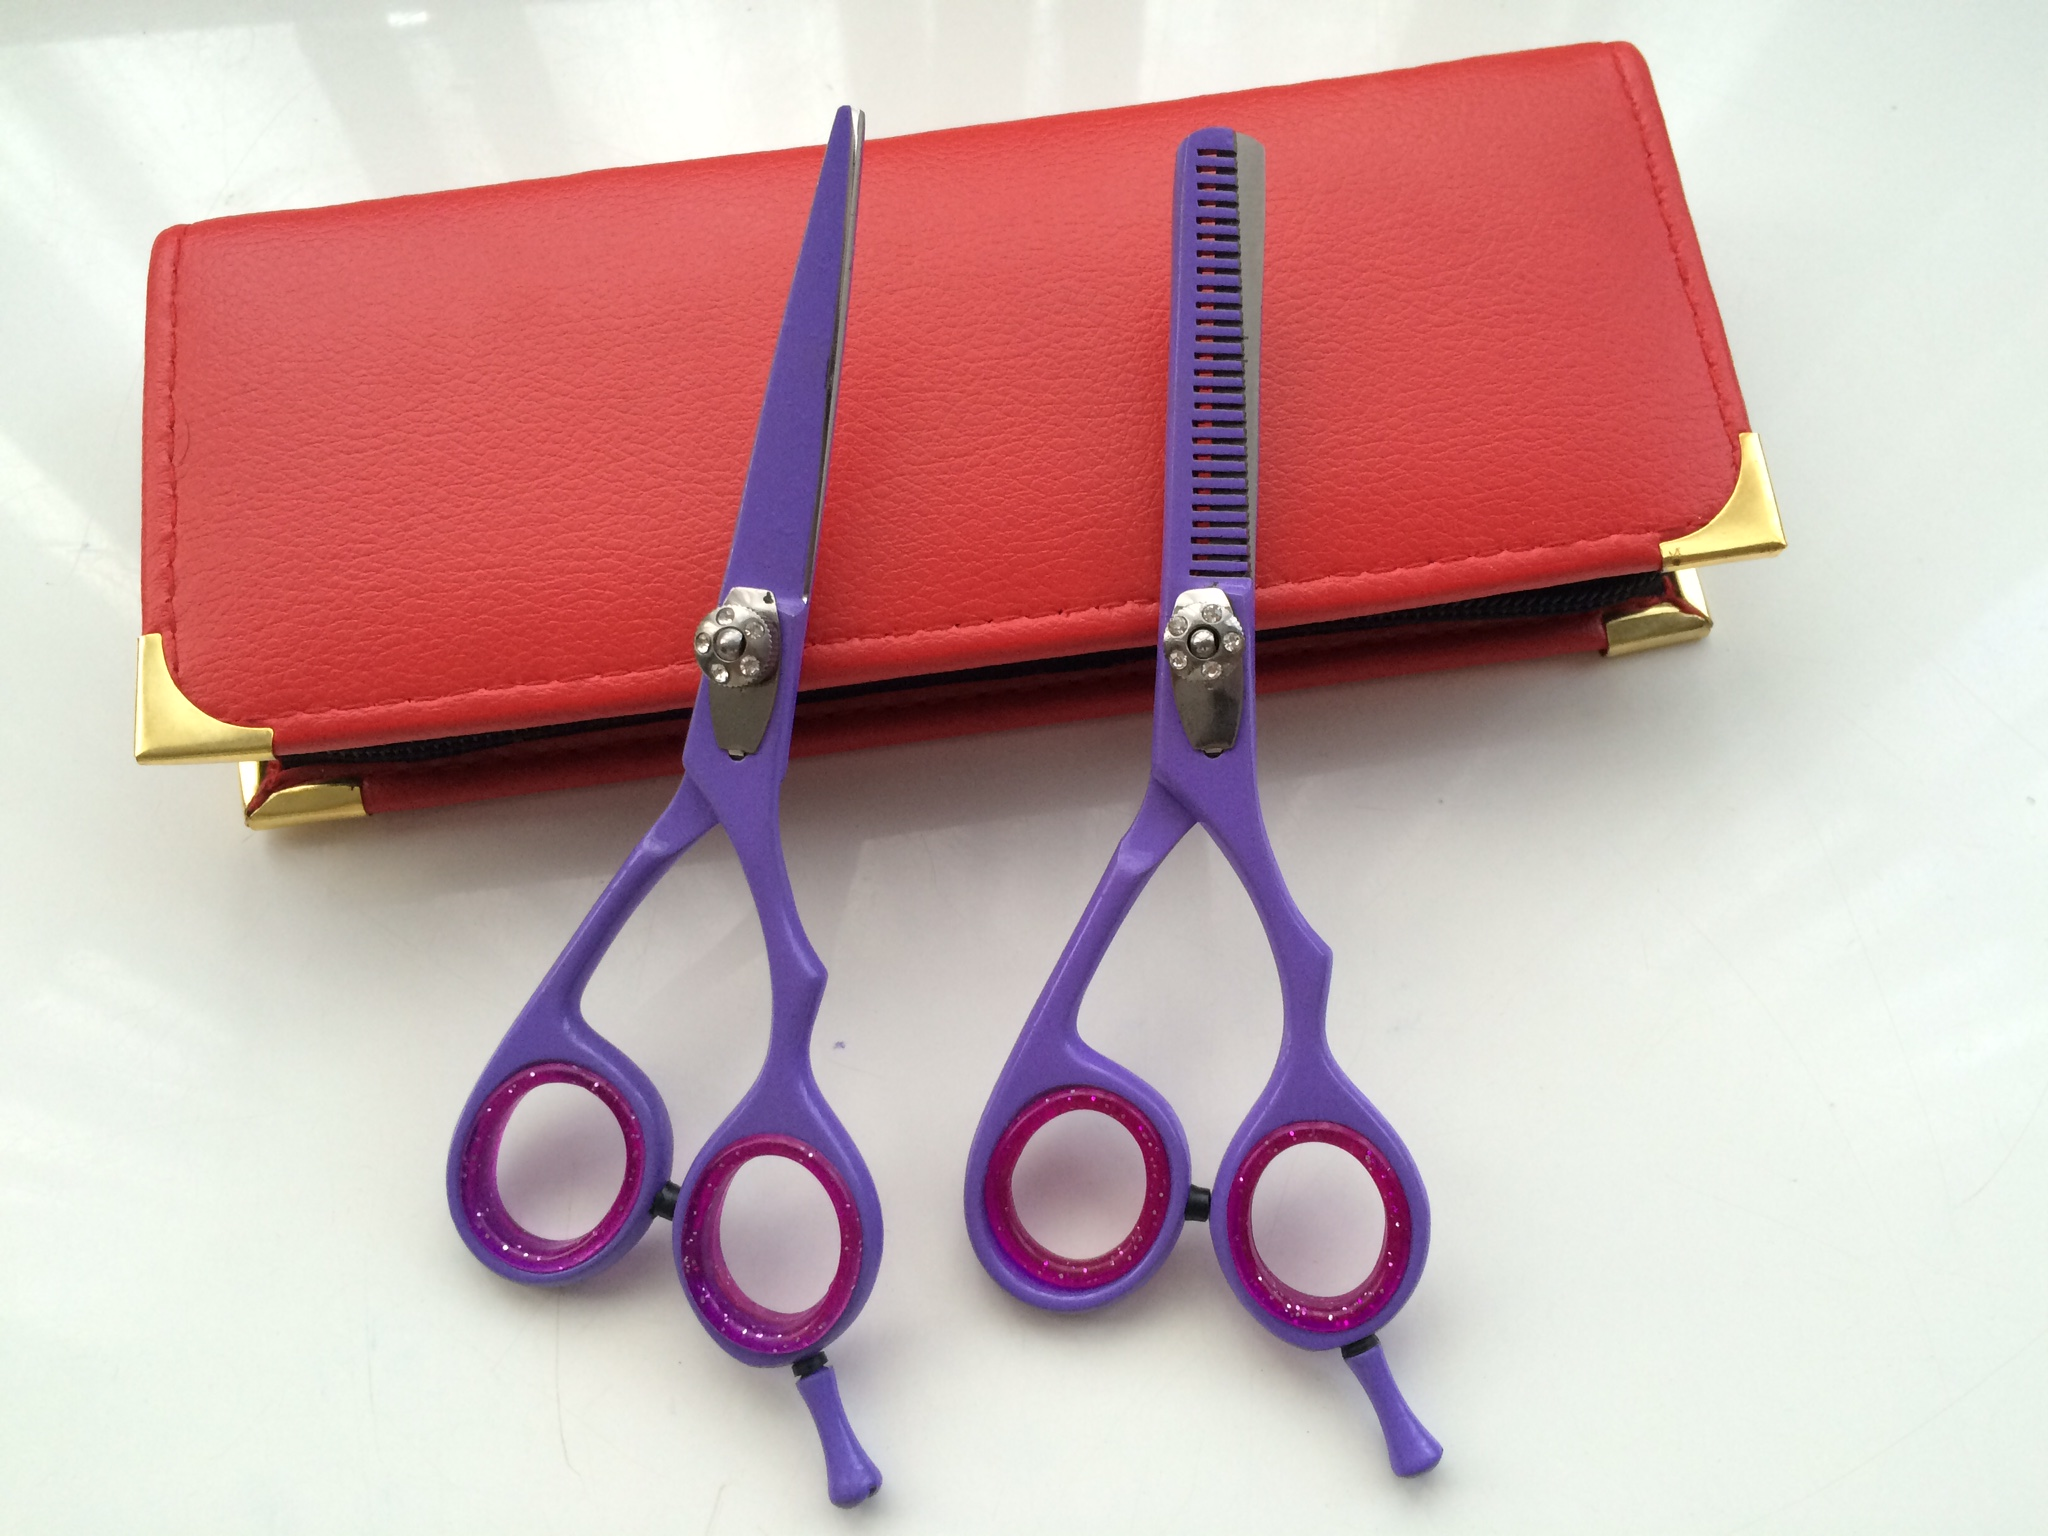 hair dressing scissors set 5.5 inch lilac